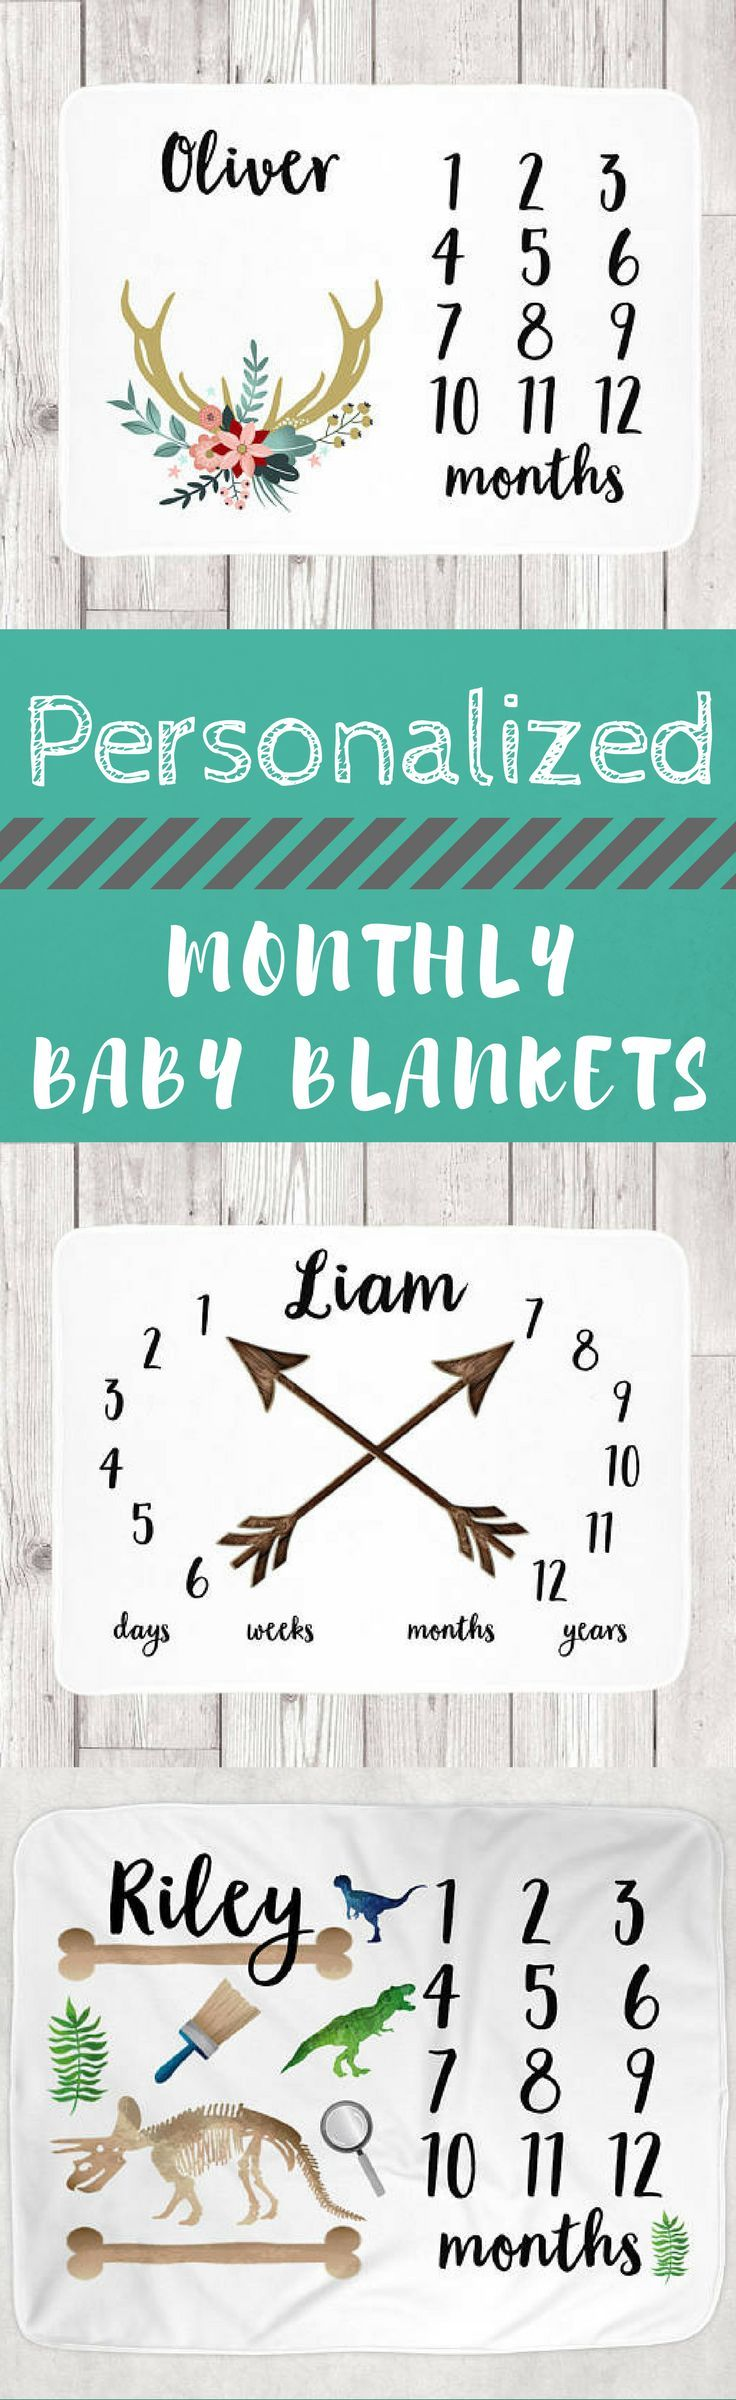 "Perfect baby shower gift! Monthly Baby Blanket - Months Blanket - Growth Blanket For Girl - Baby Blanket for Boy - Months Weeks Personalized - Baby Name 30""x40"" #baby #babyshower #babyblanket #babynursery #personalized #monogram #babyboy #babygirl #momlife #etsy #affiliate"